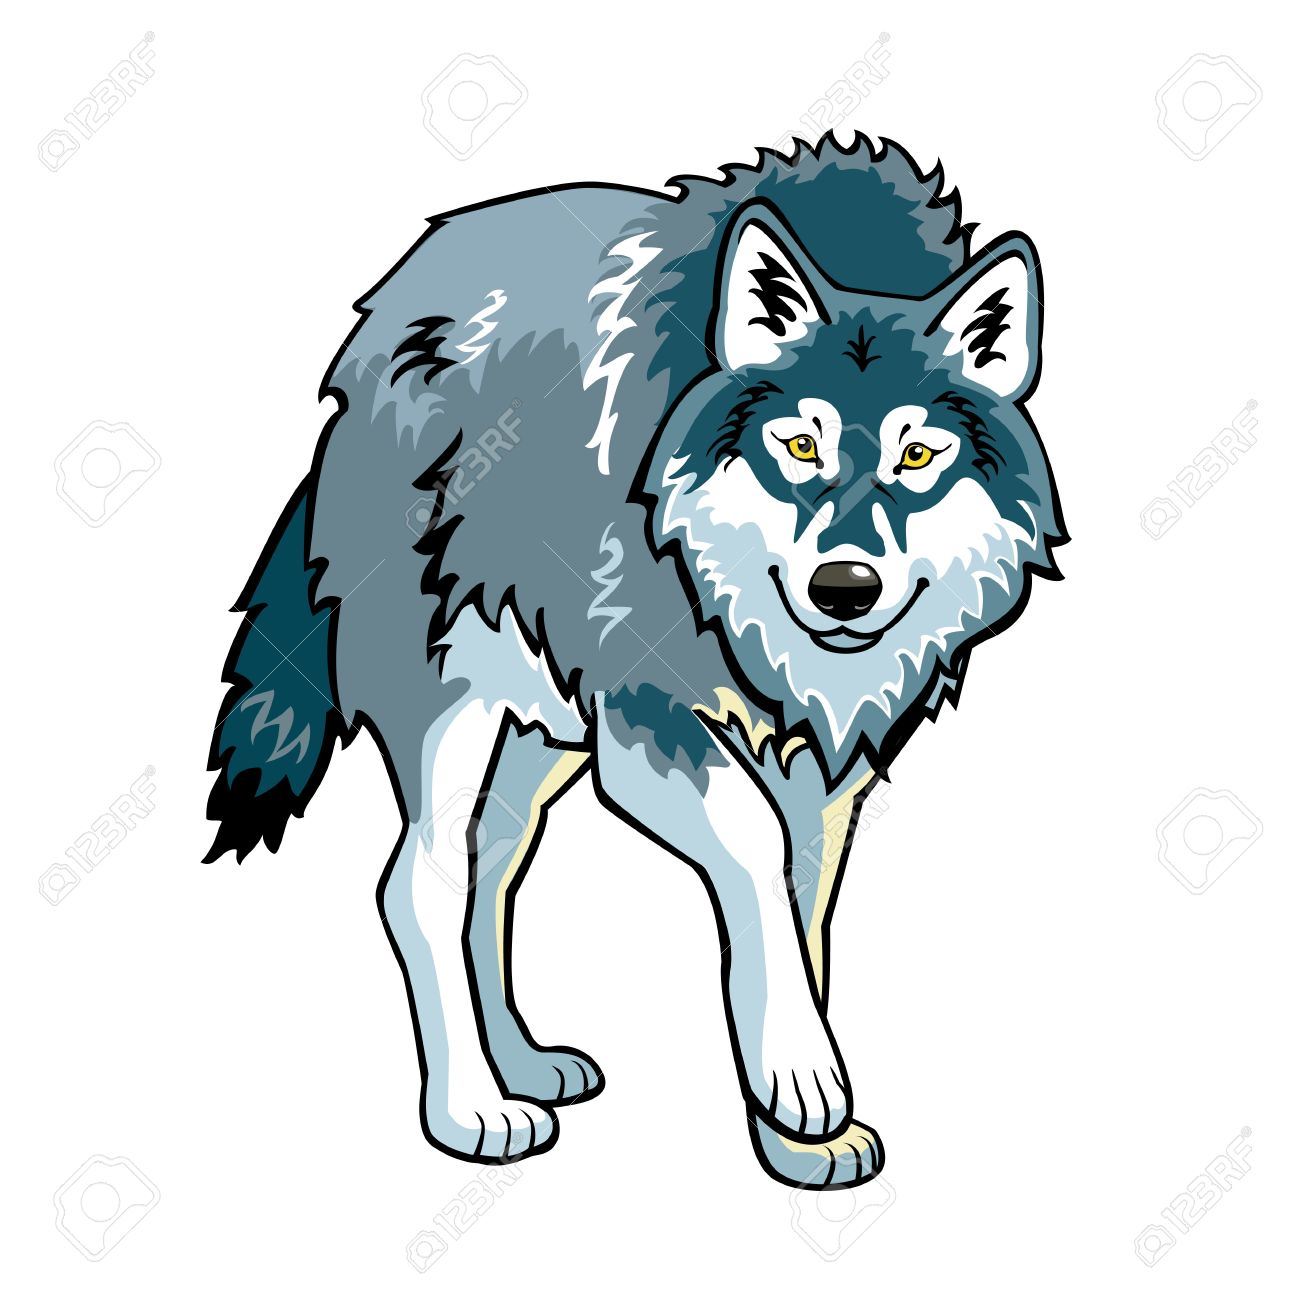 Wolves clipart carnivore. Best wolf clipartion com